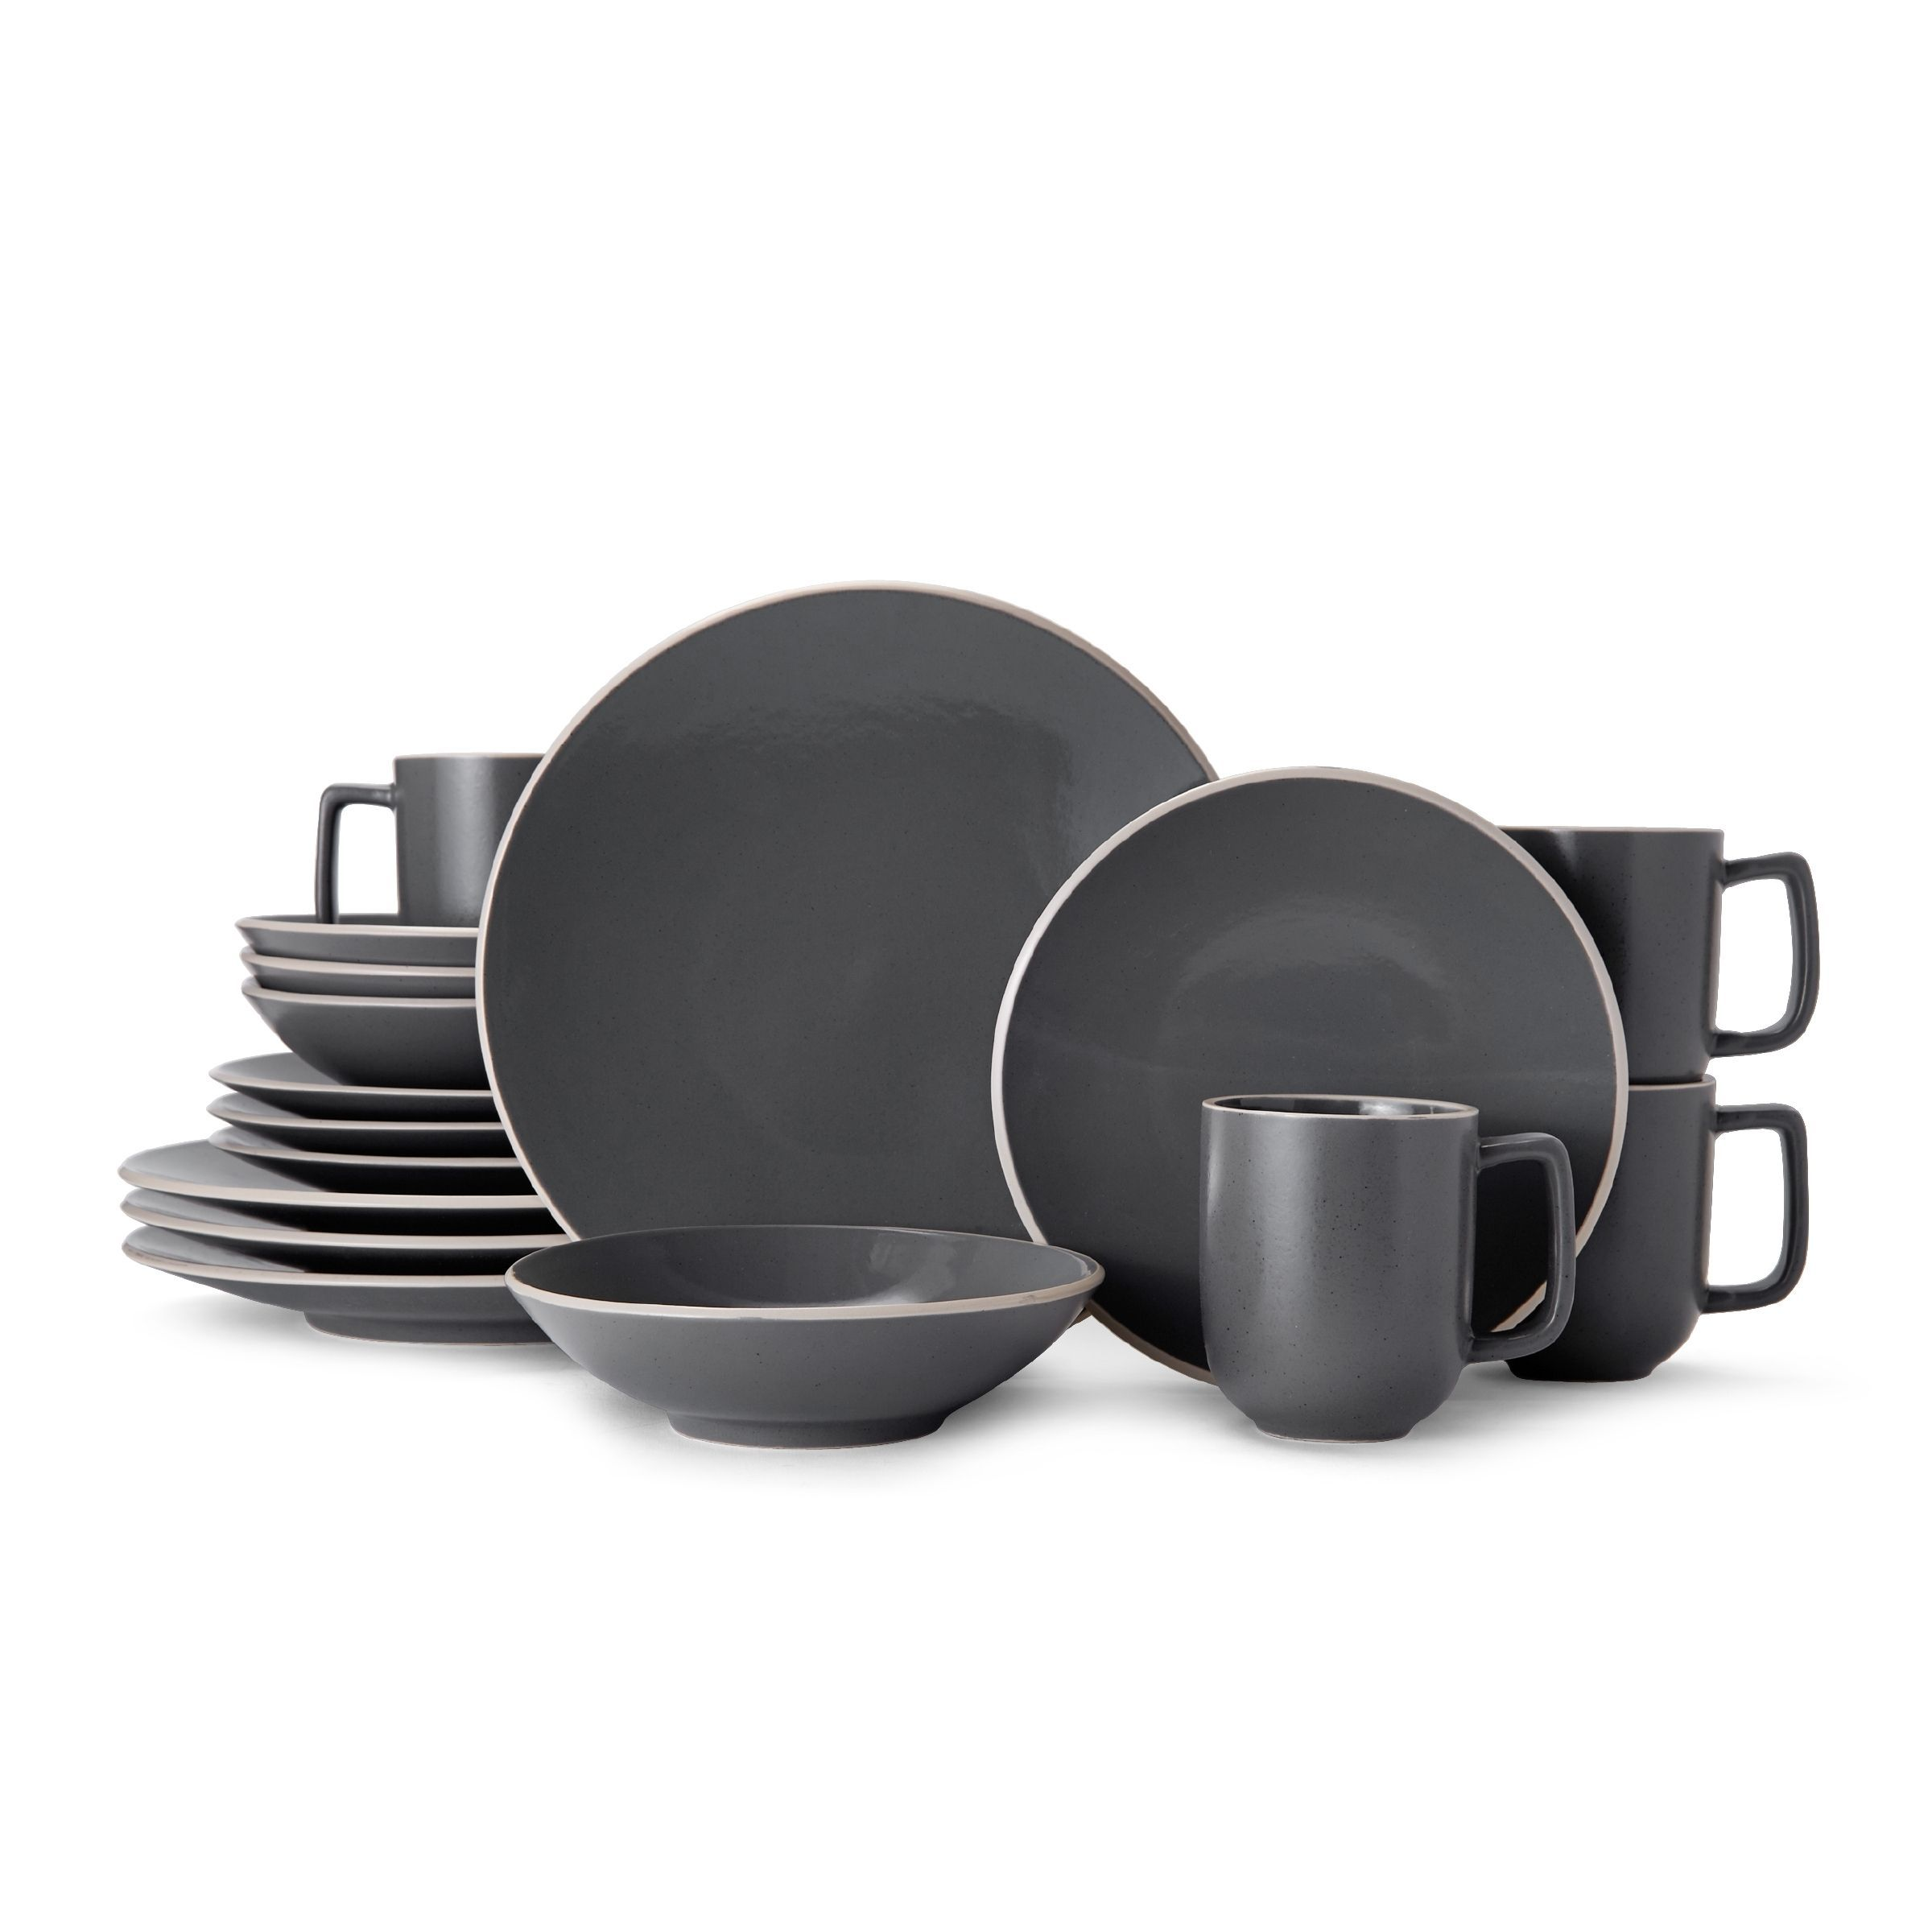 Mikasa Leah Charcoal Stoneware Dinnerware Set for 4 - Case of 16 (Mikasa Leah Charcoal  sc 1 st  Pinterest & Mikasa Leah Charcoal Stoneware Dinnerware Set for 4 - Case of 16 ...